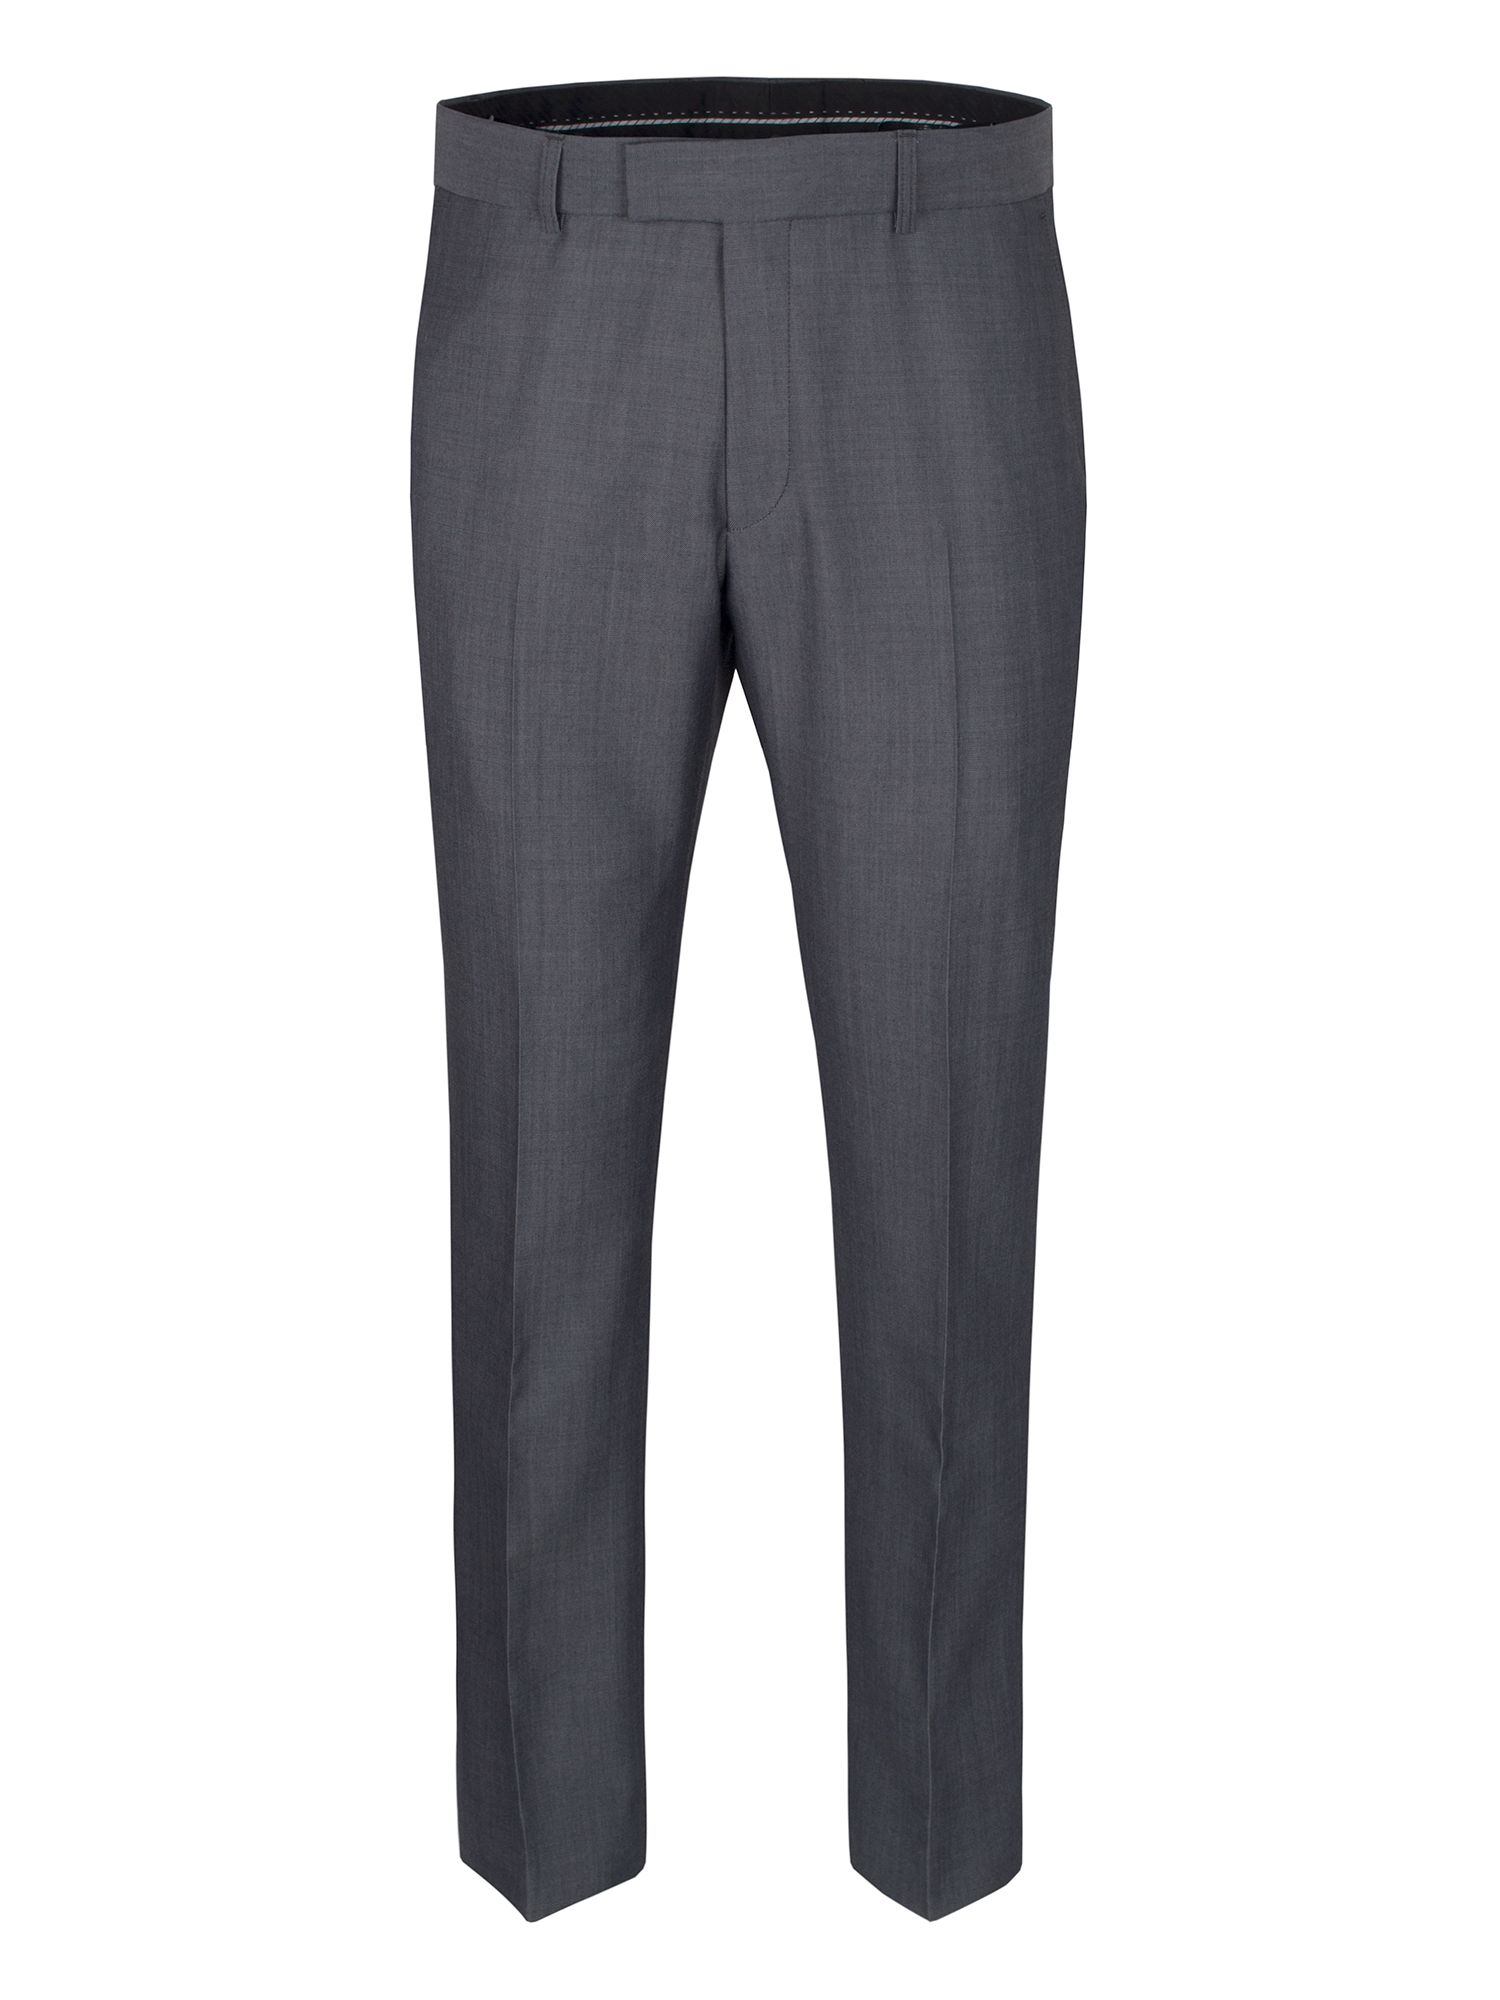 Grey tonic suit trouser